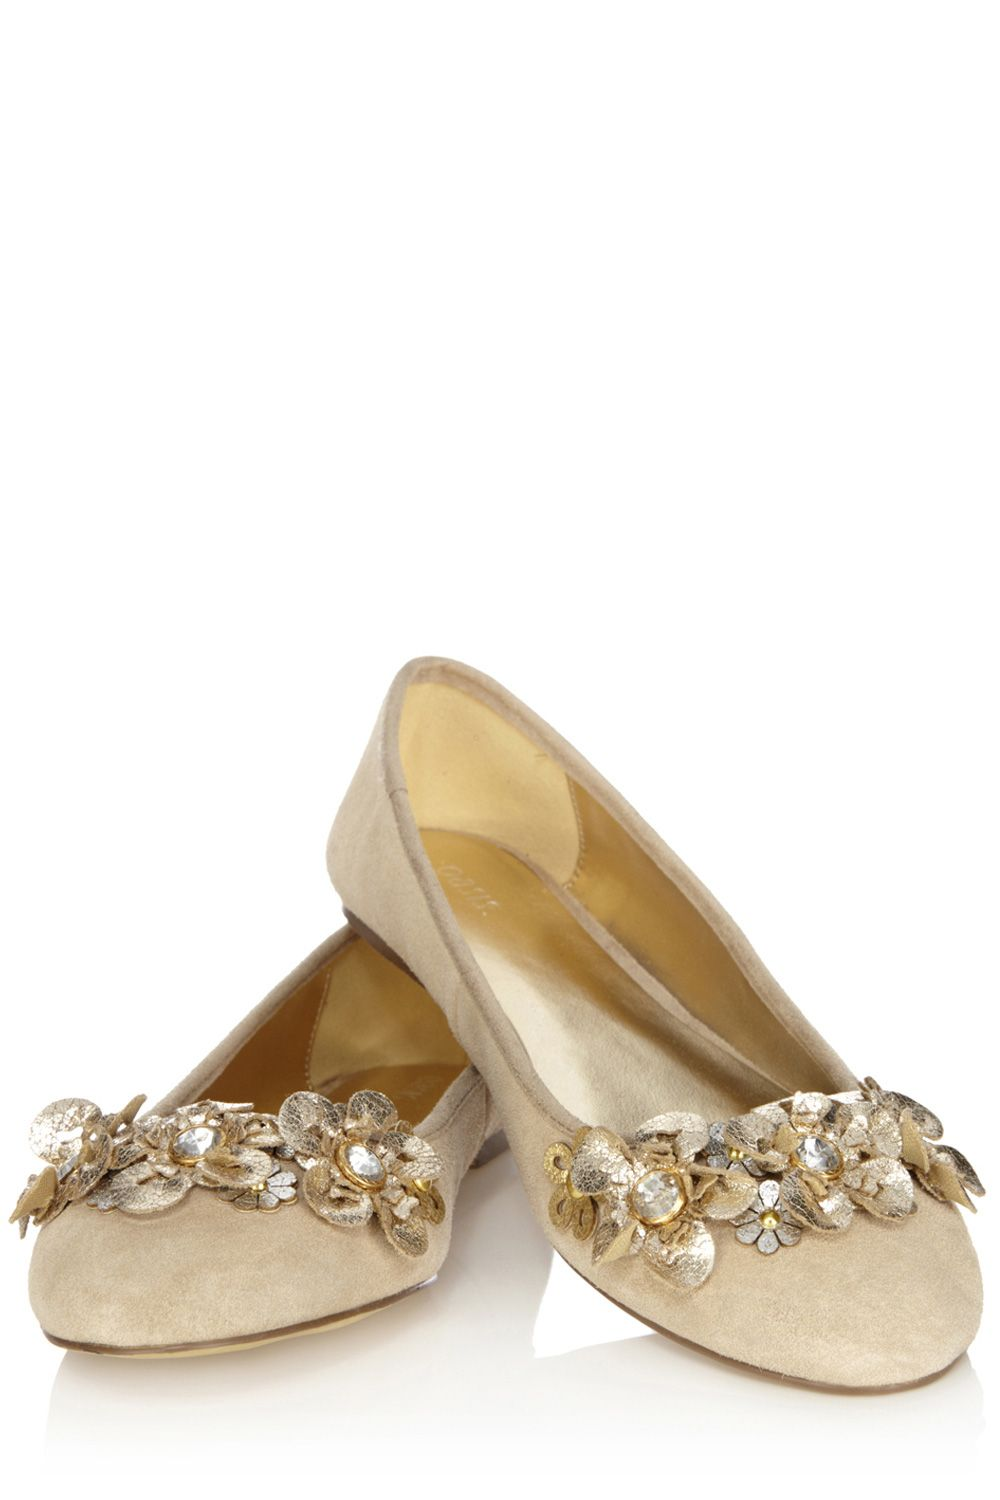 Metallic flower ballerina pumps